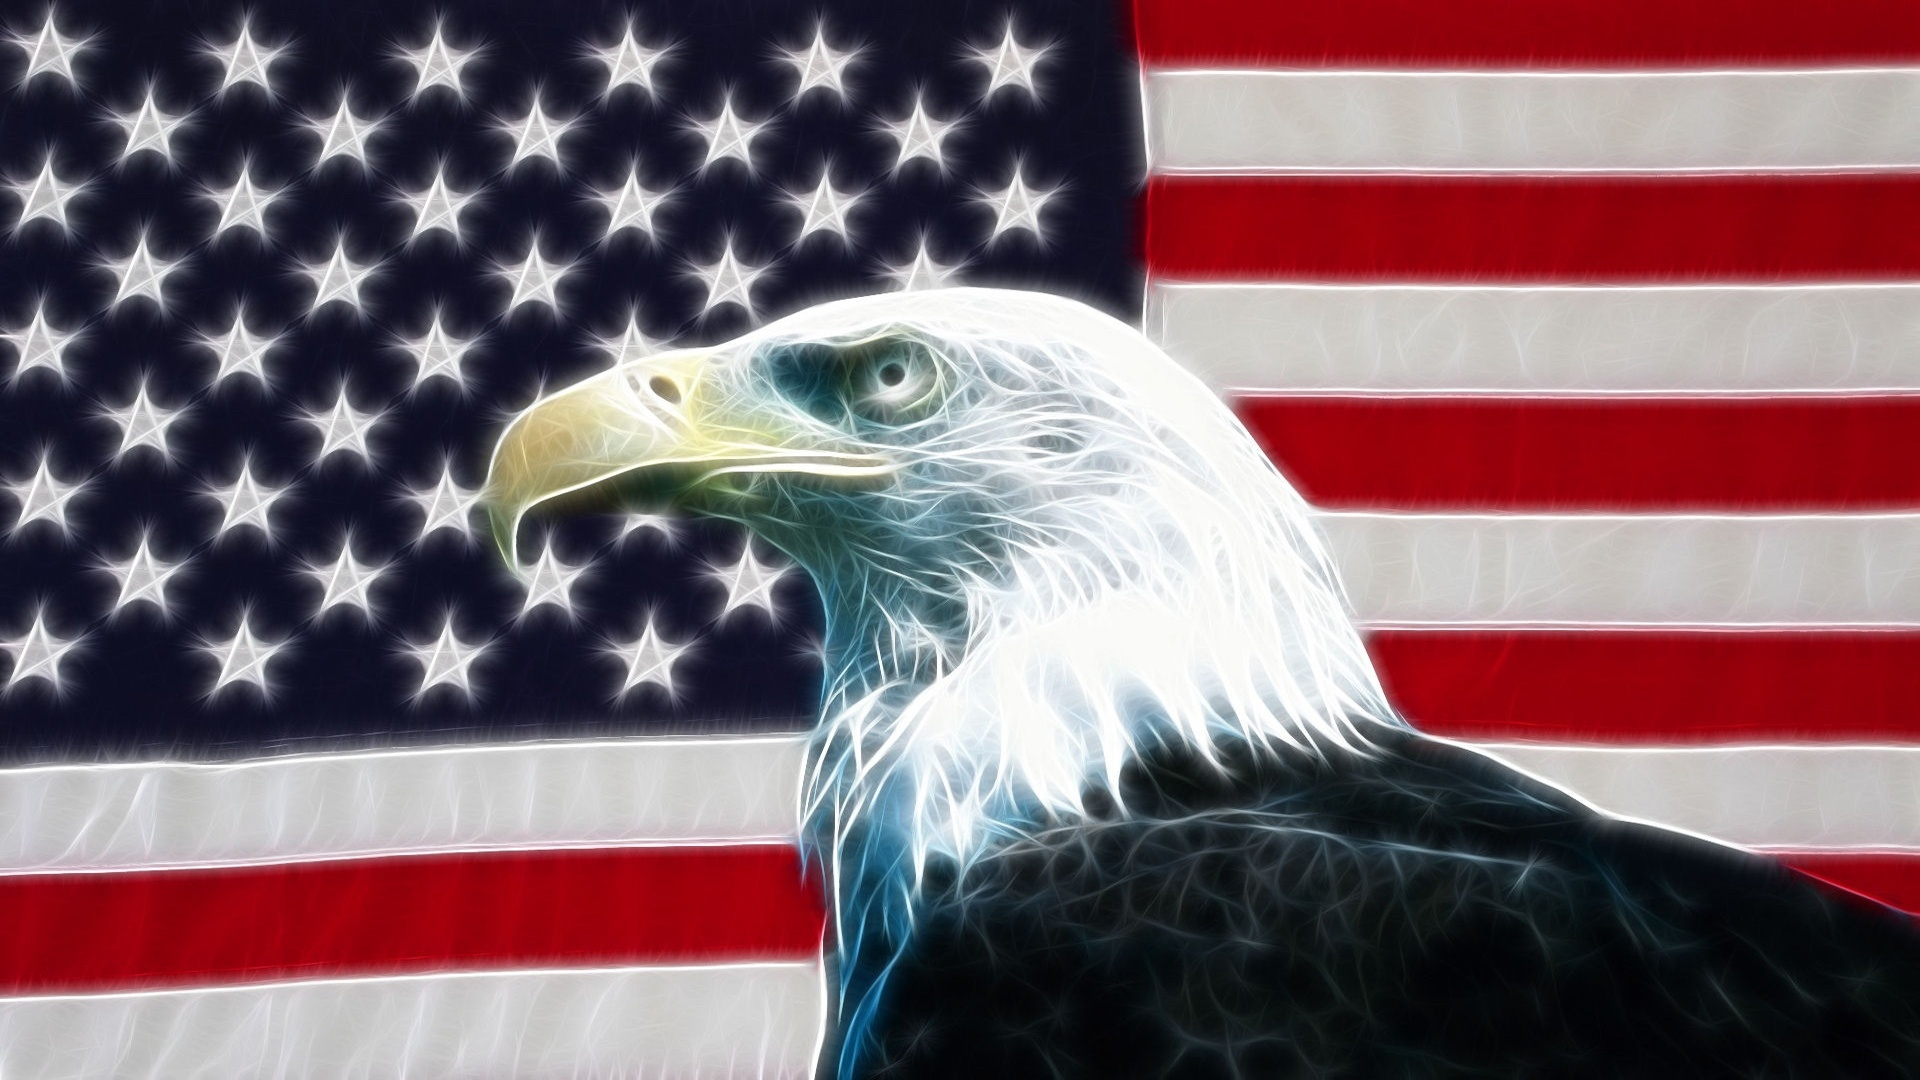 Pin American Eagle High Definition Wallpapers Hd HD Wallpaper Image on 1920x1080